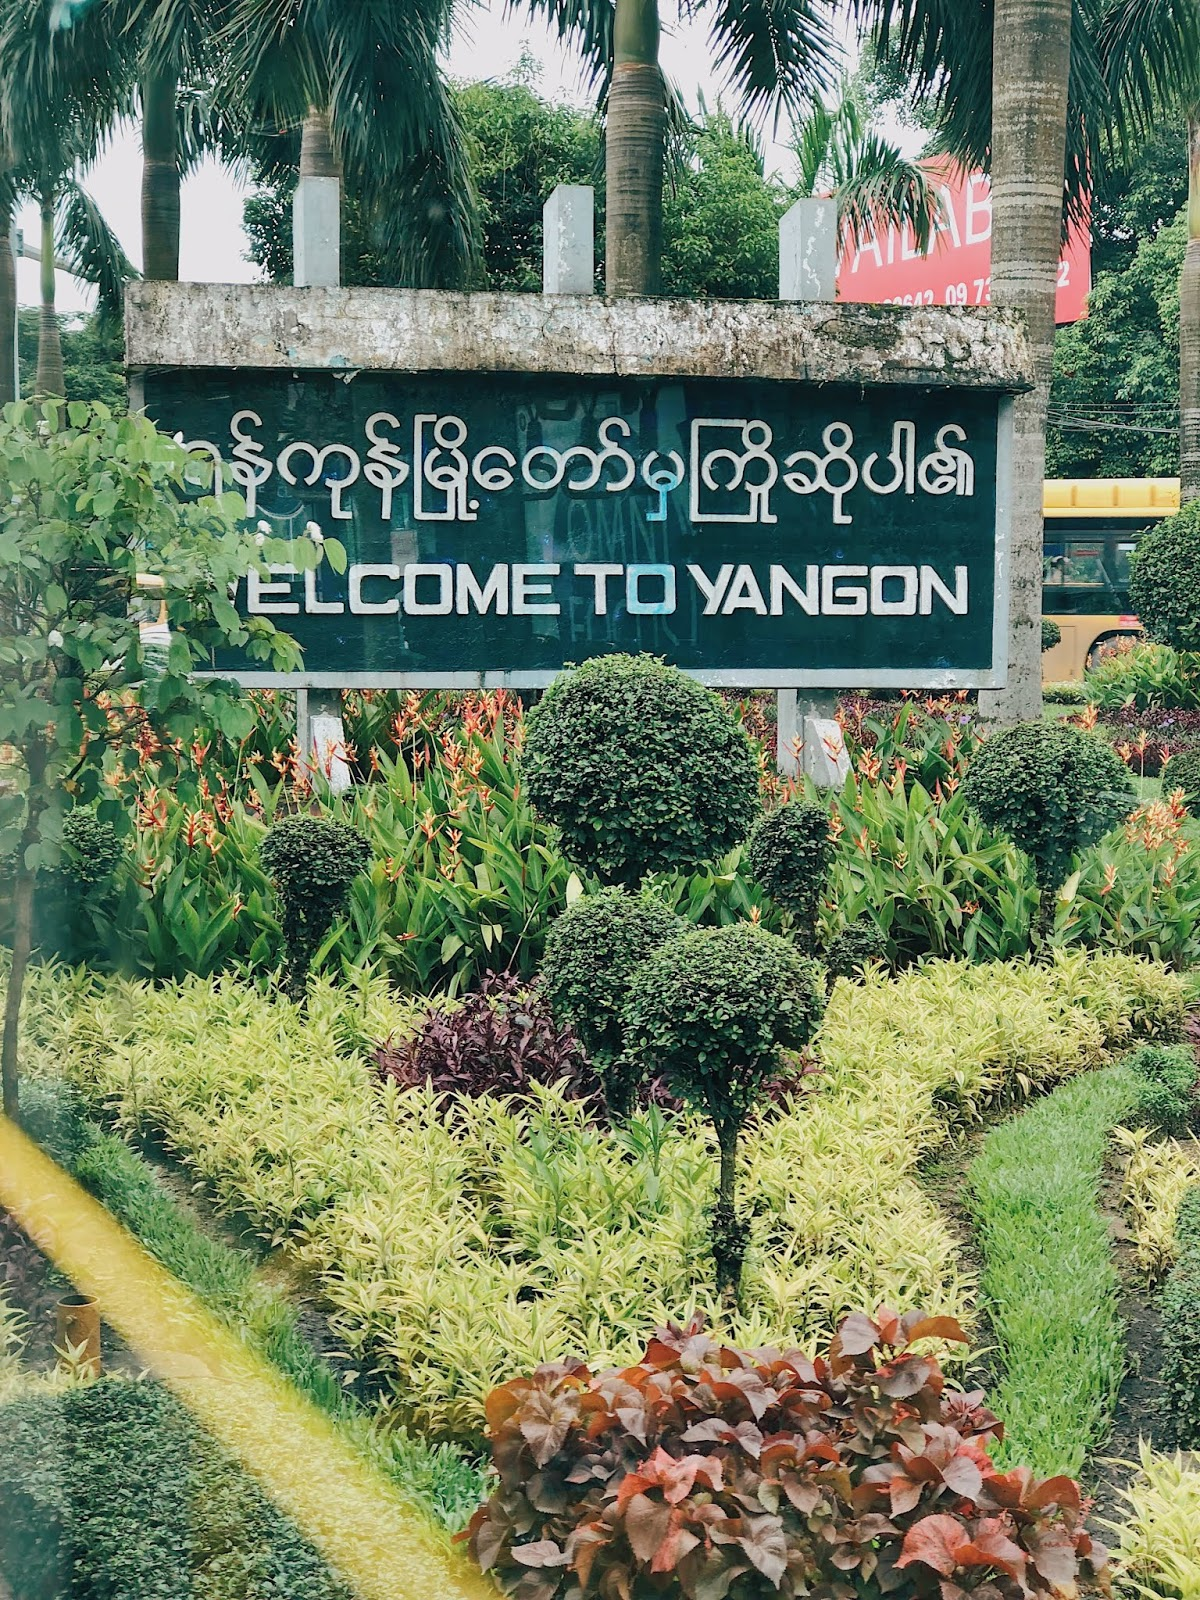 Sign of Welcome to Yangon